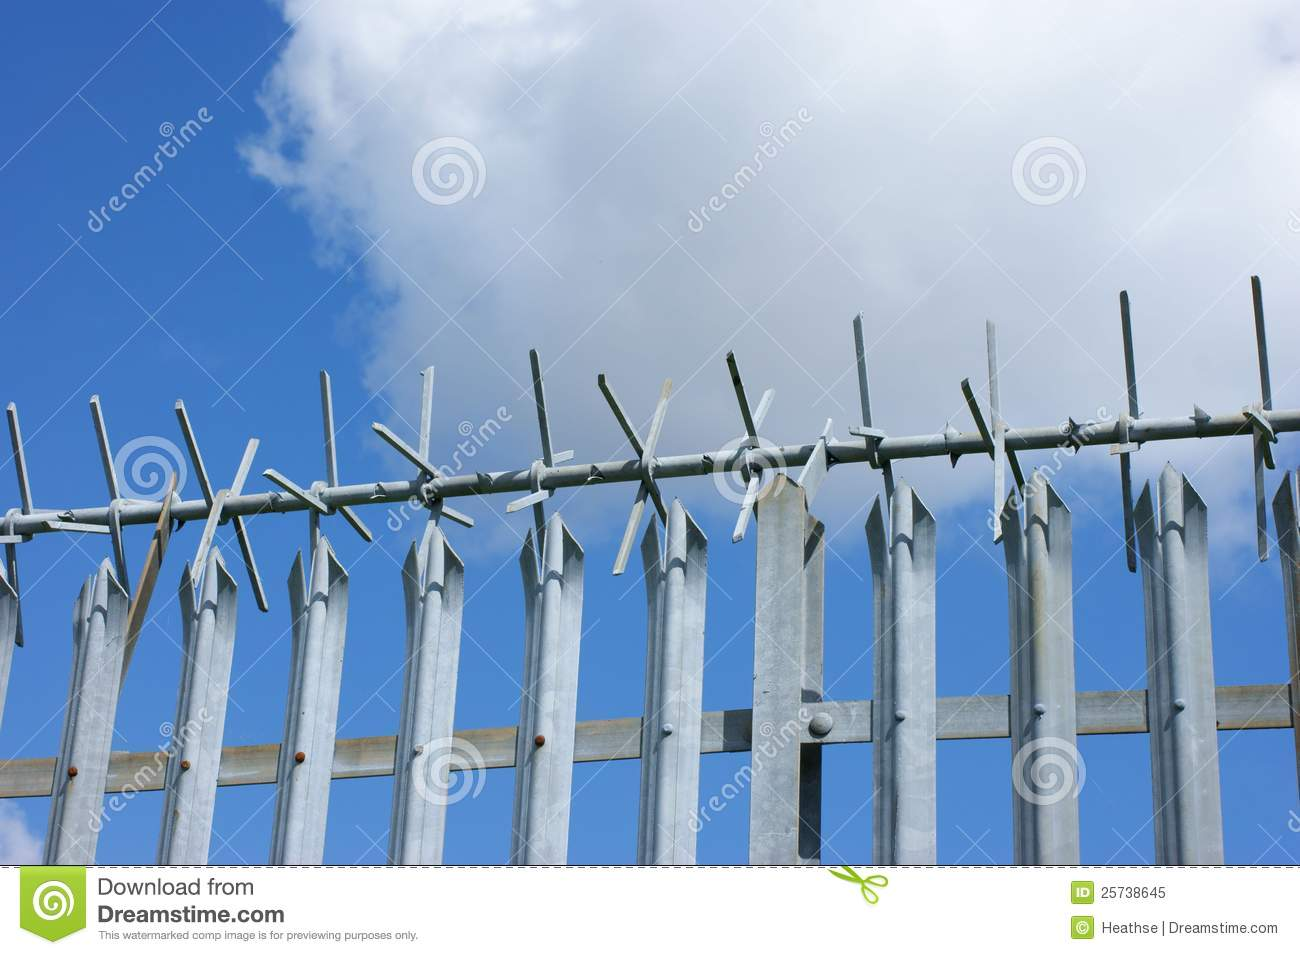 security fence royalty free stock photo